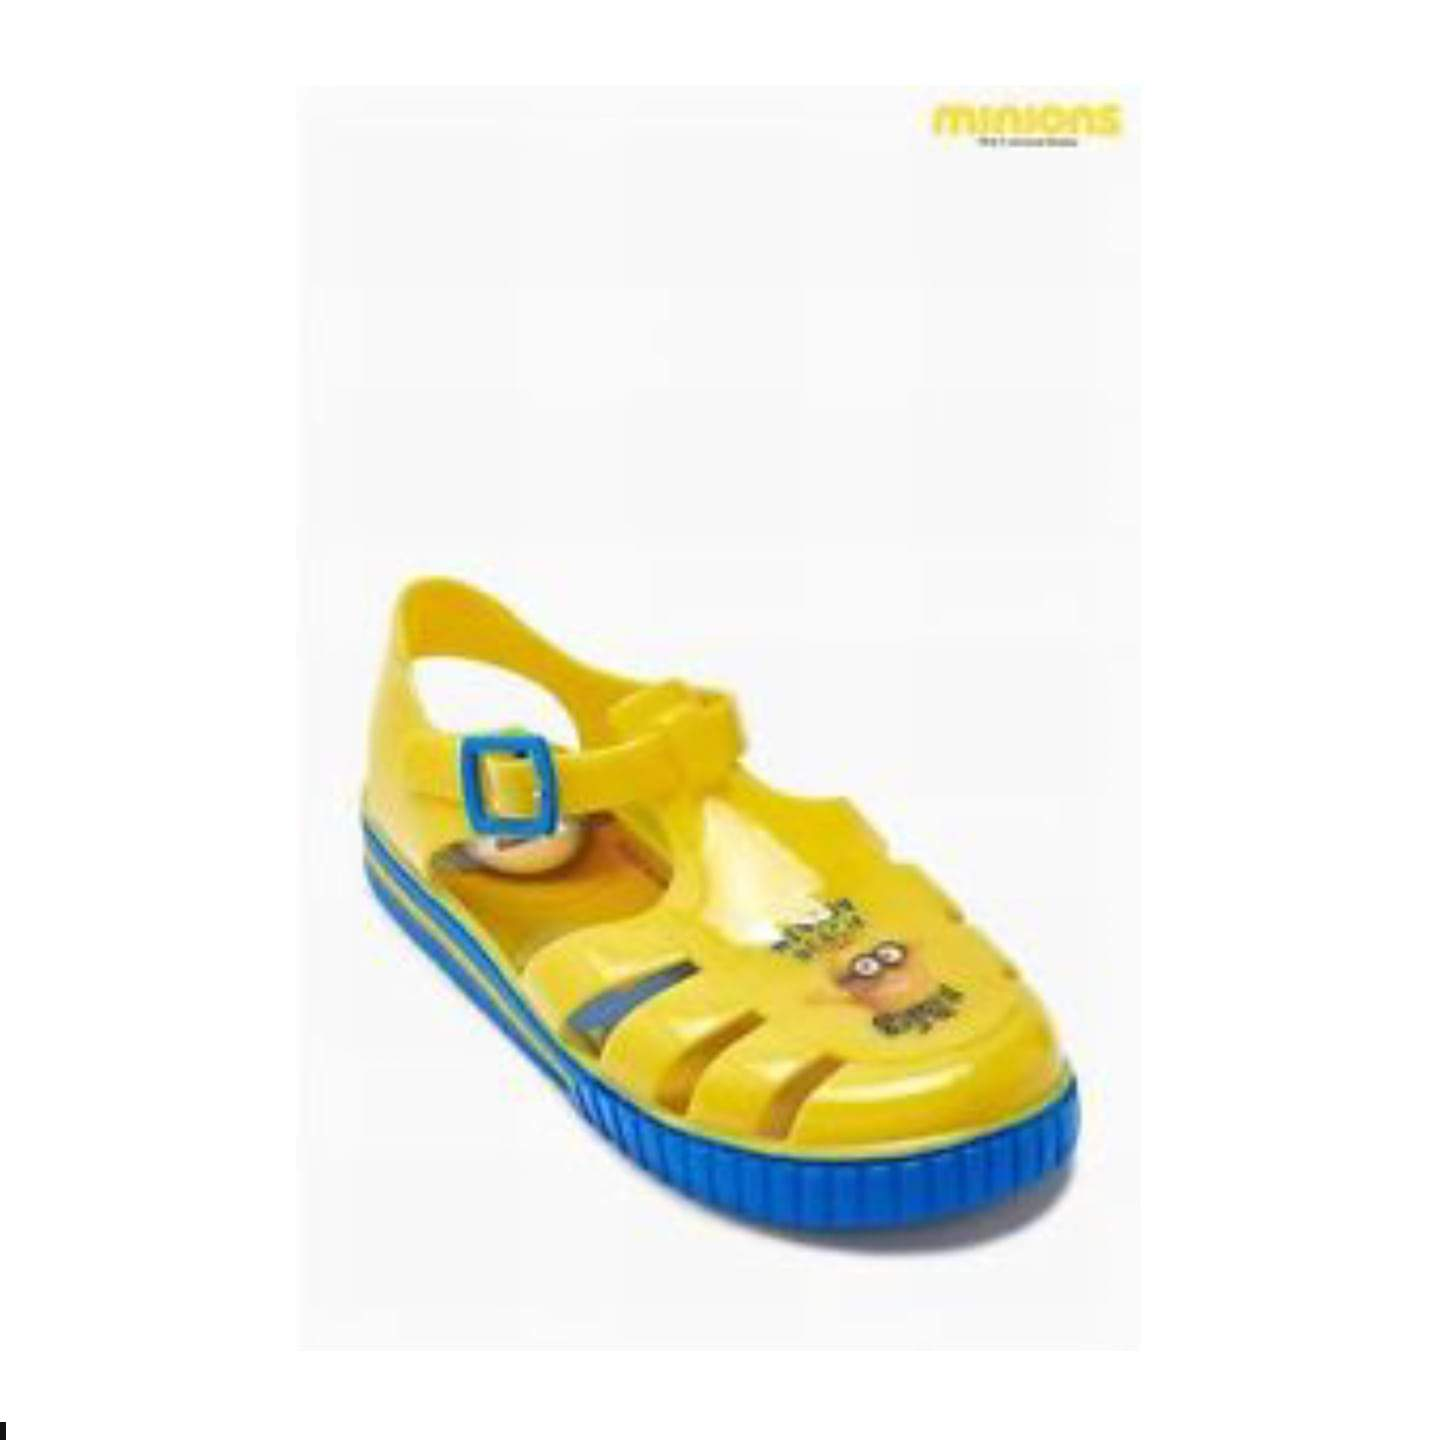 Next Minion Jelly Shoes